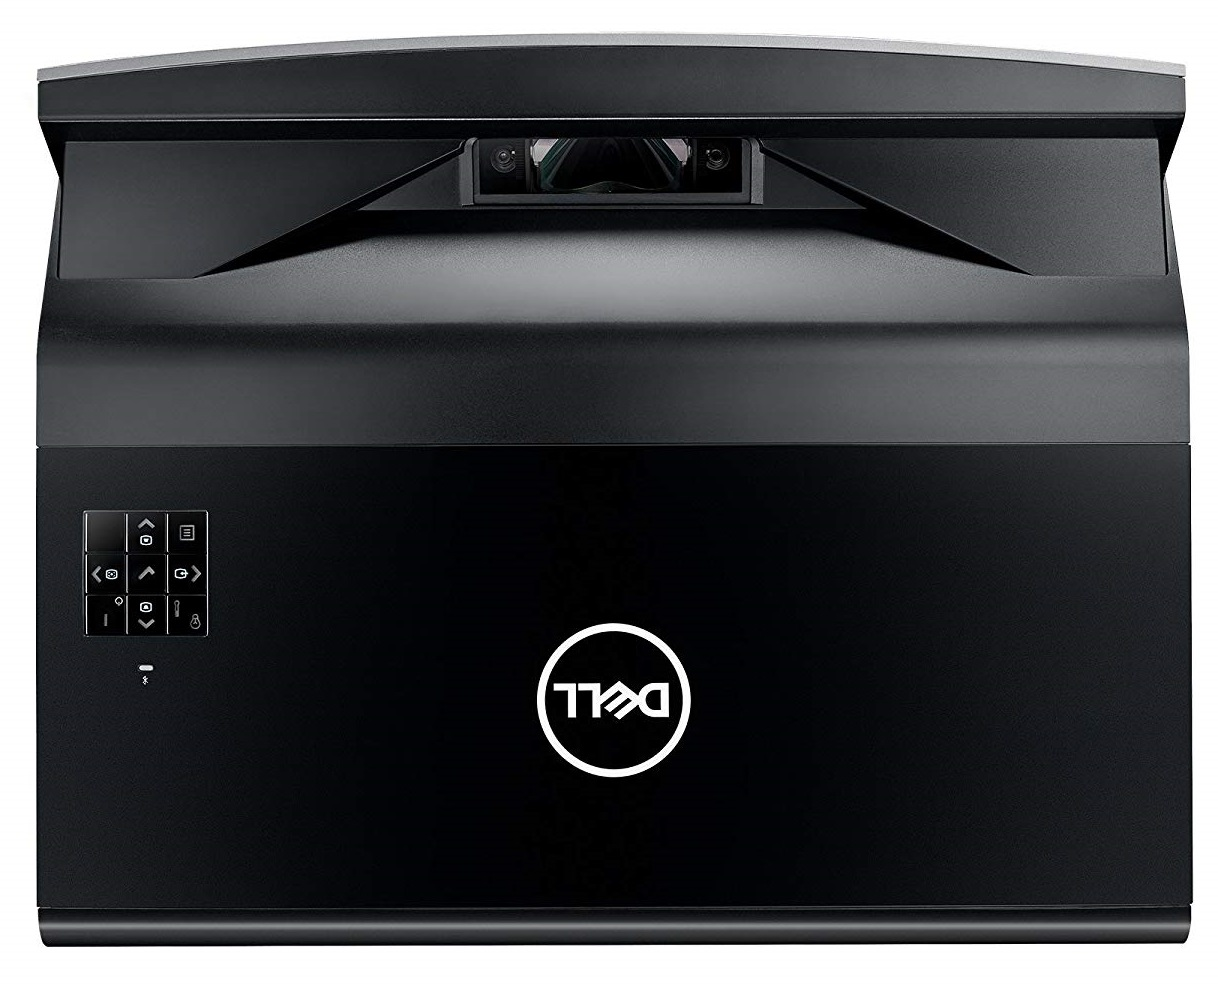 small resolution of dell advanced 4k laser projector s718ql